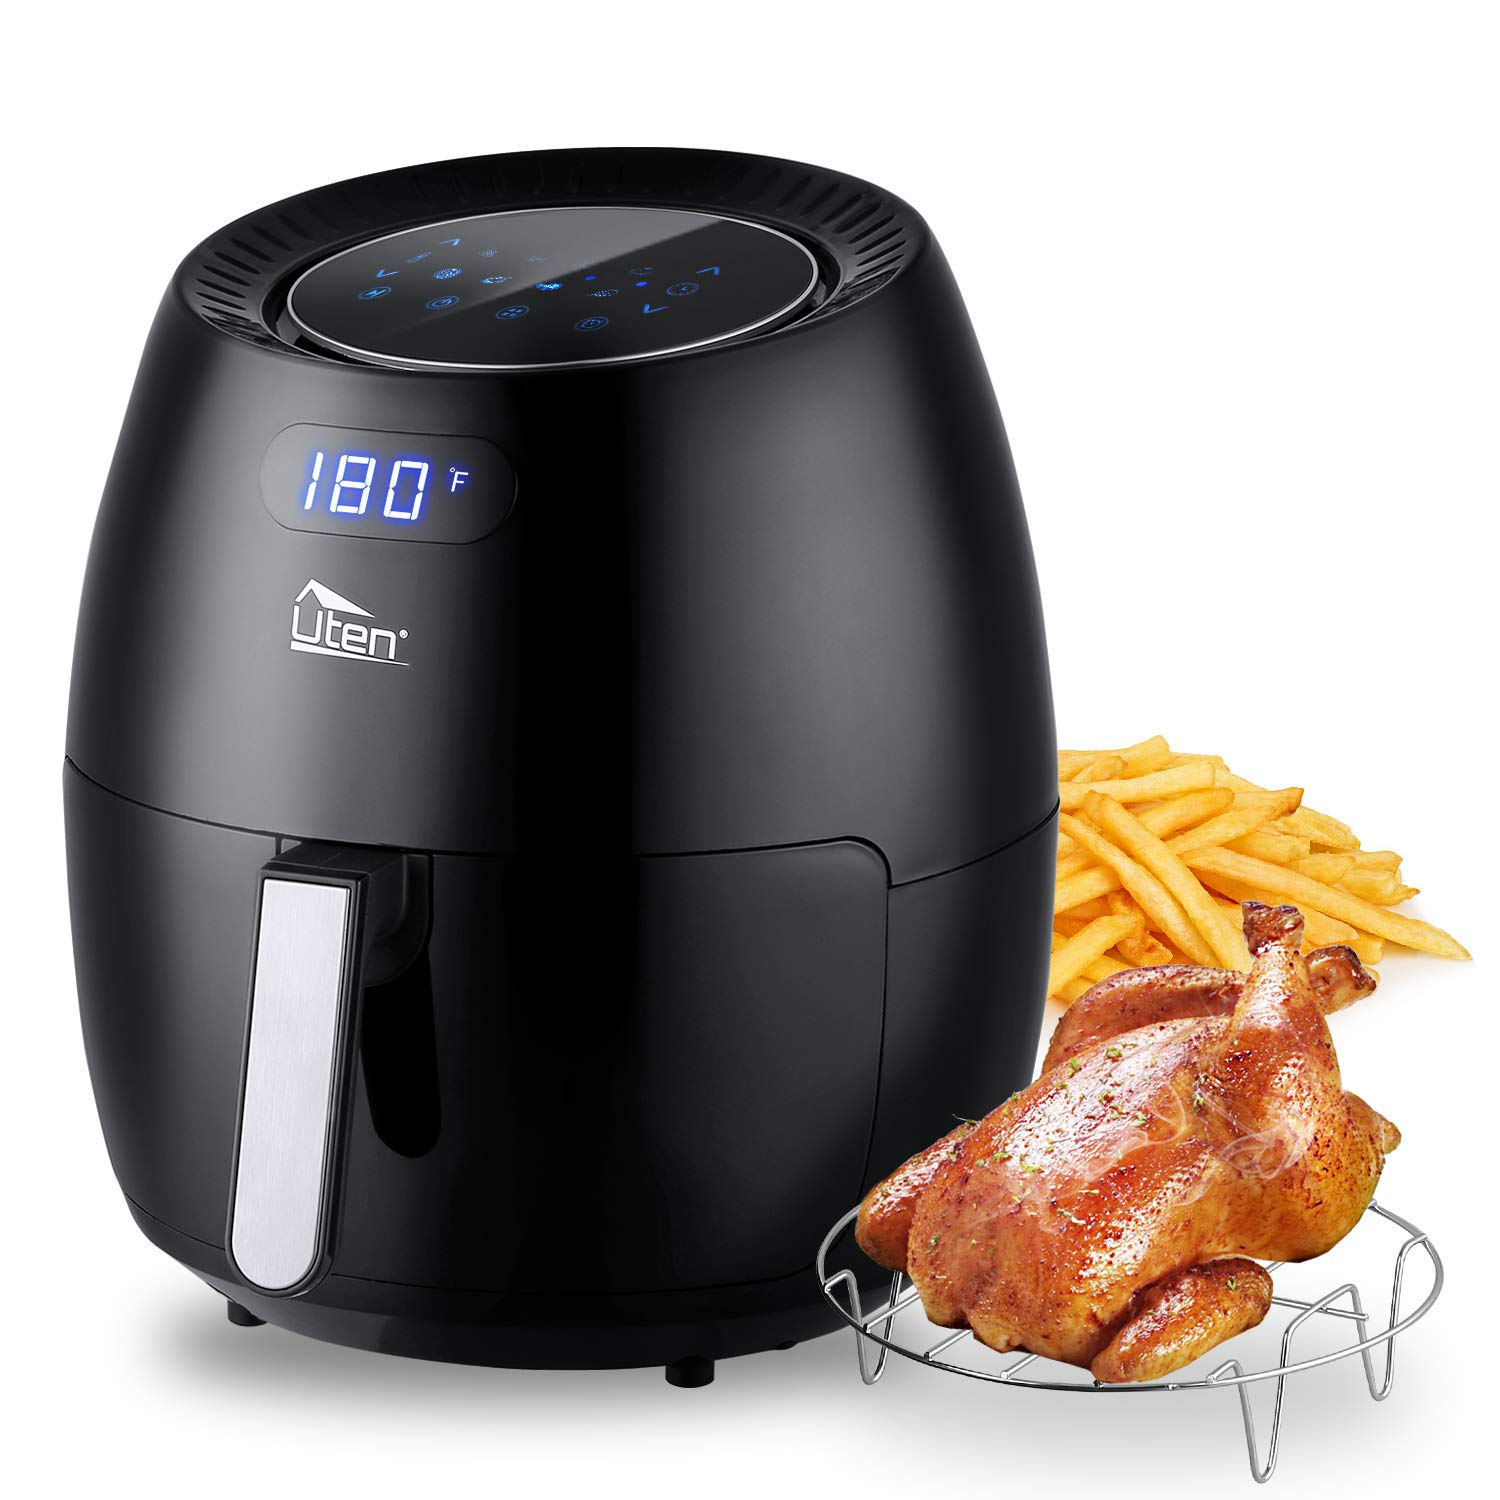 Uten Air Fryer 6.9QT, Electric Non-Stick Air Fryers Oven Oilless Cooker, 8 Cooking Preset, Instant Temp/Time Control, LED Digital Touchscreen - Black